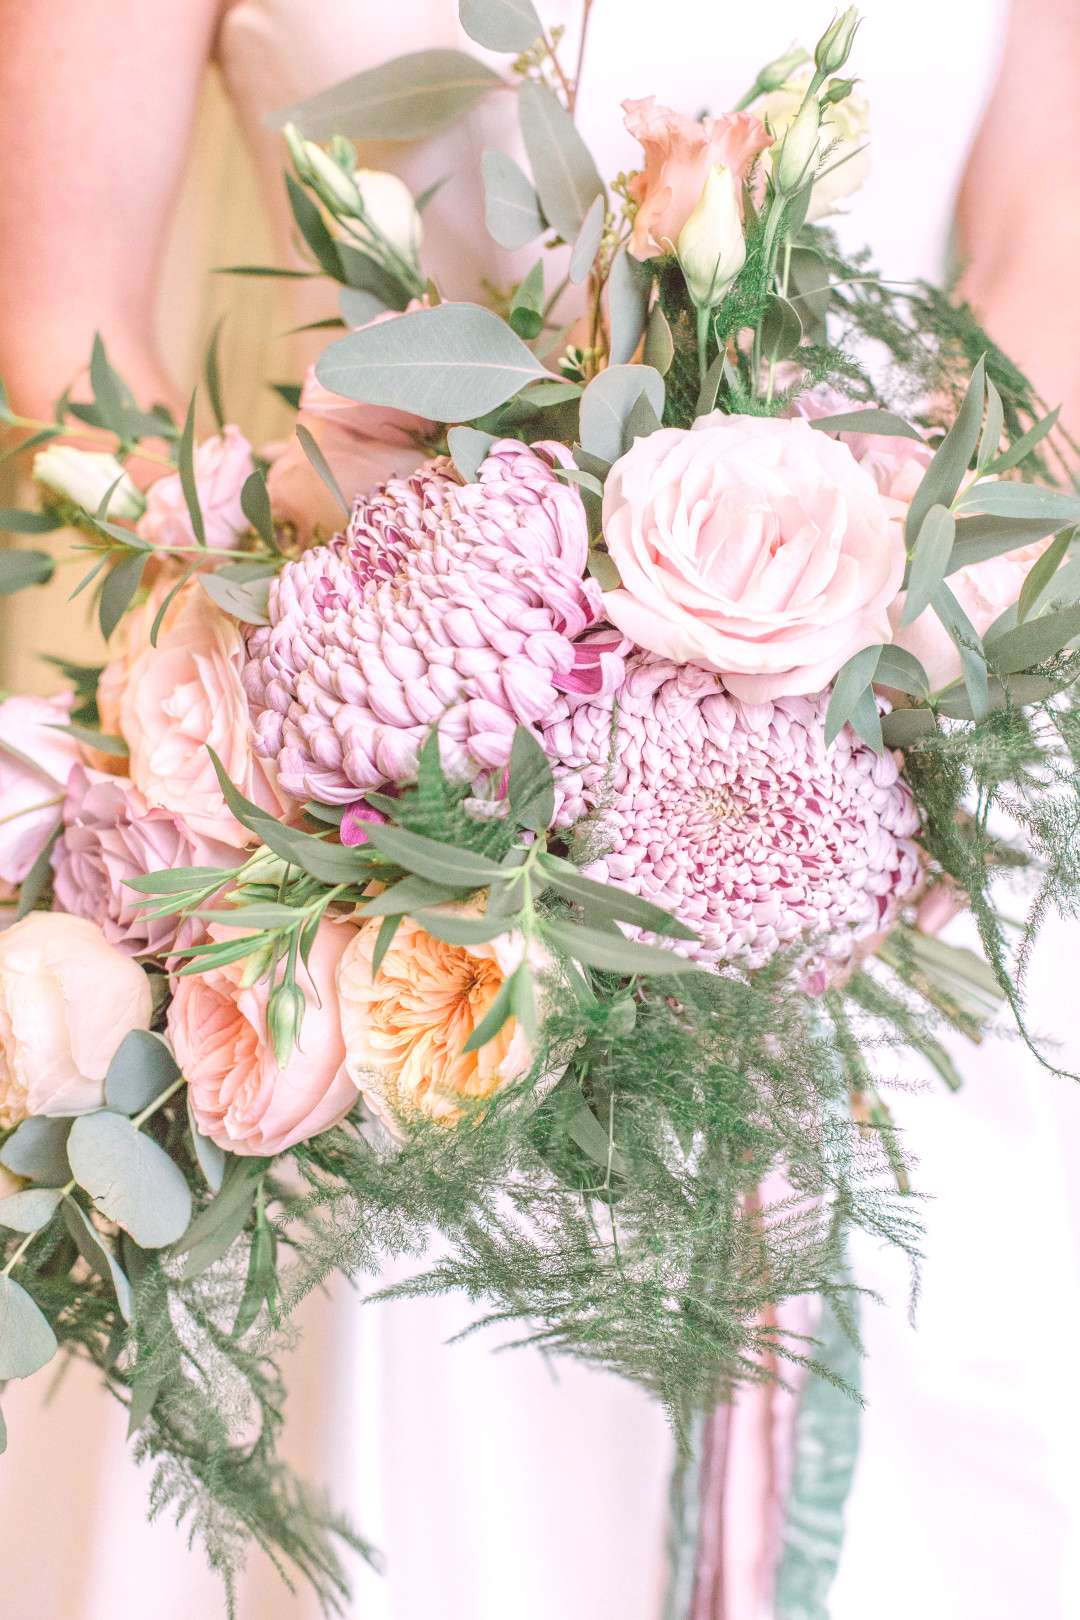 Bridal Bouquet We absolutely adore creating bouquets for our brides. This pastel palette consisted